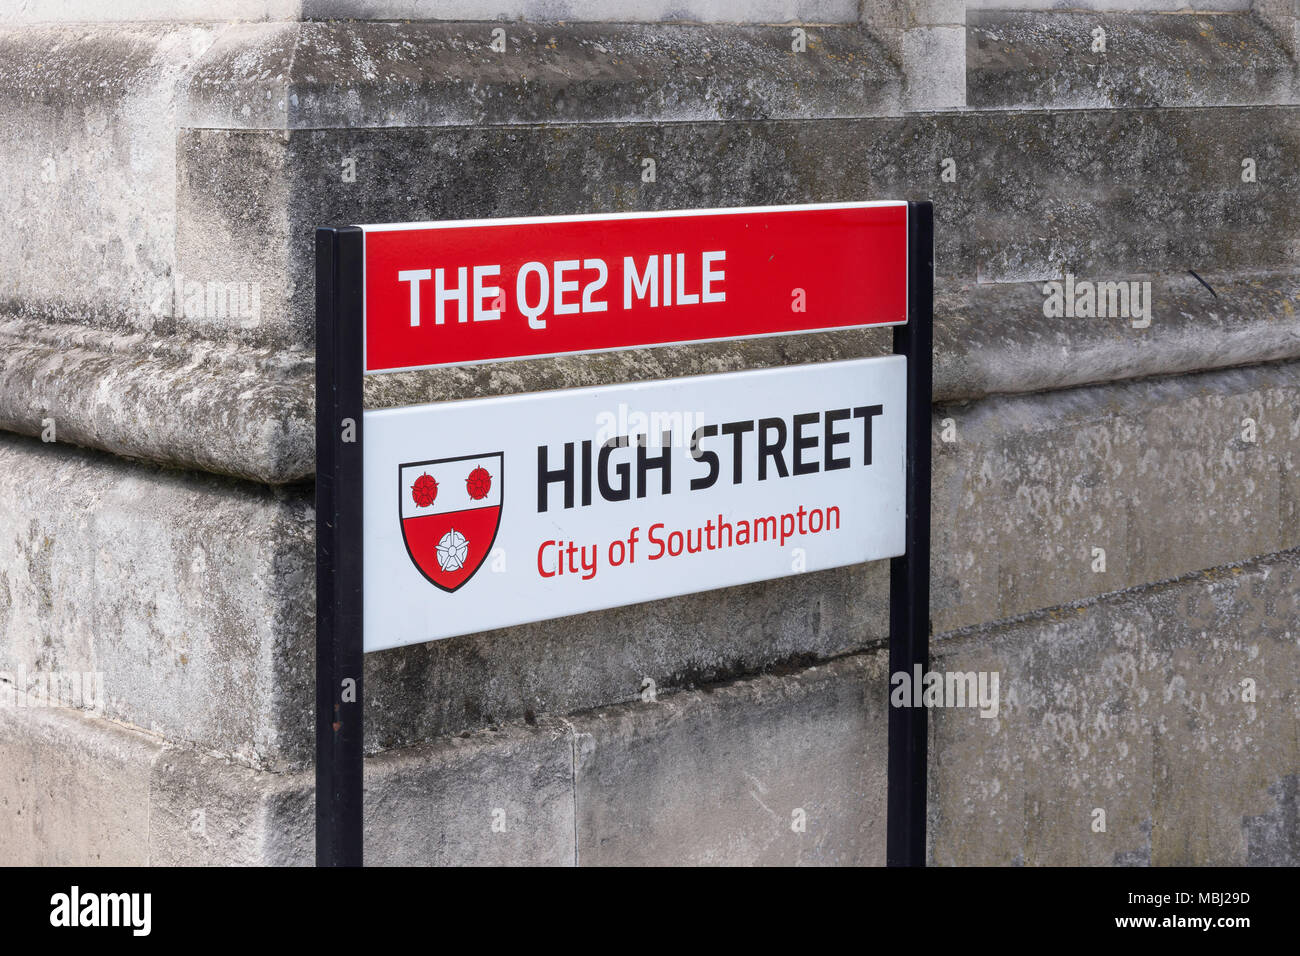 The QE2 Mile and high street sign, High Street, Southampton, Hampshire, England, United Kingdom - Stock Image